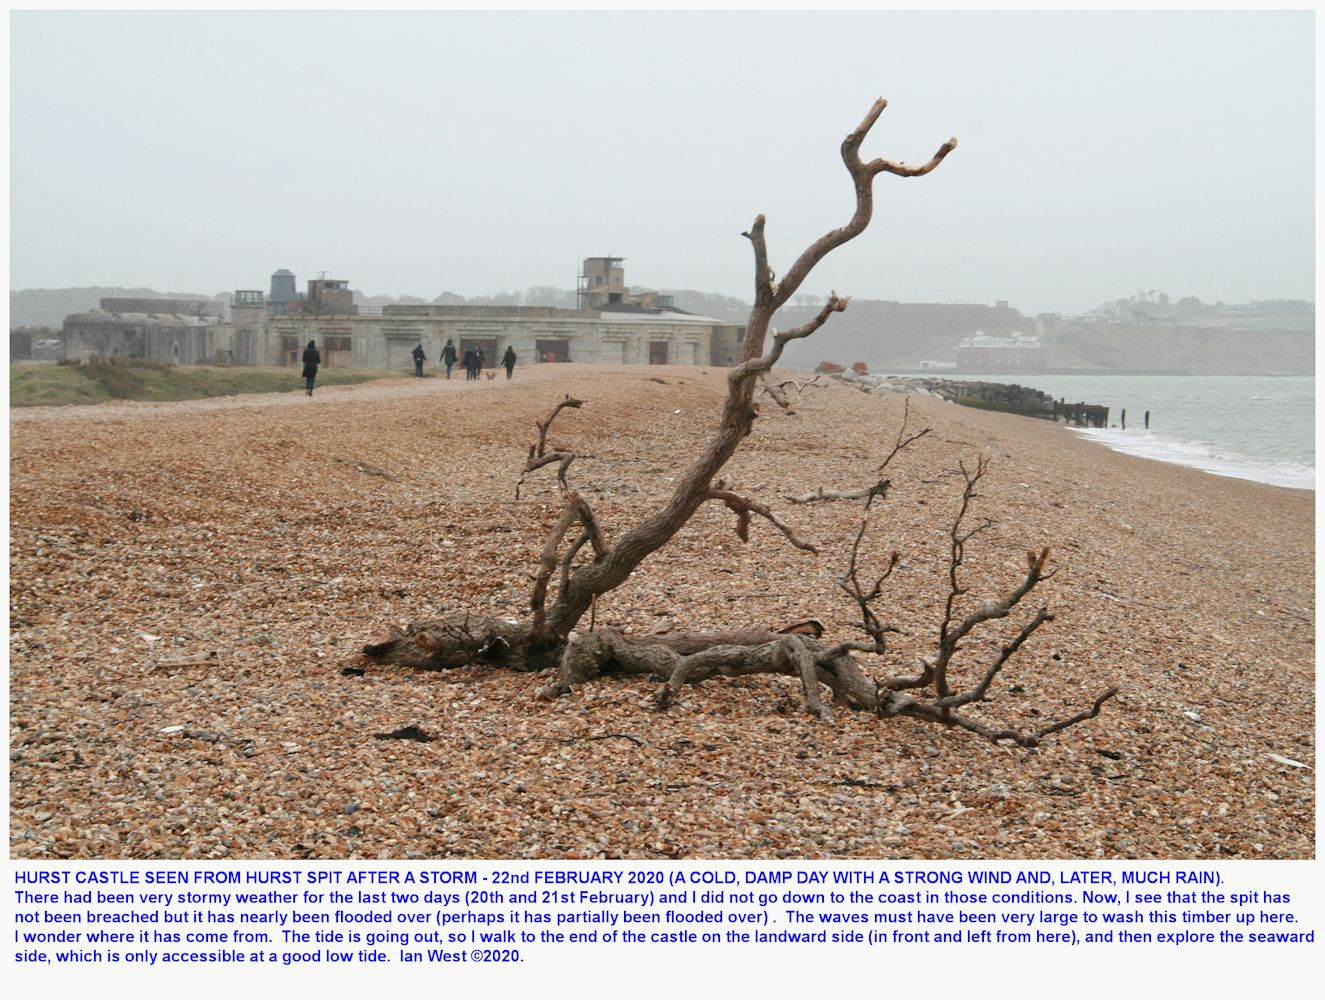 Looking towards Hurst Castle at the end of Hurst Spit, soon after storm activity has washed up some tree debris, February 2020